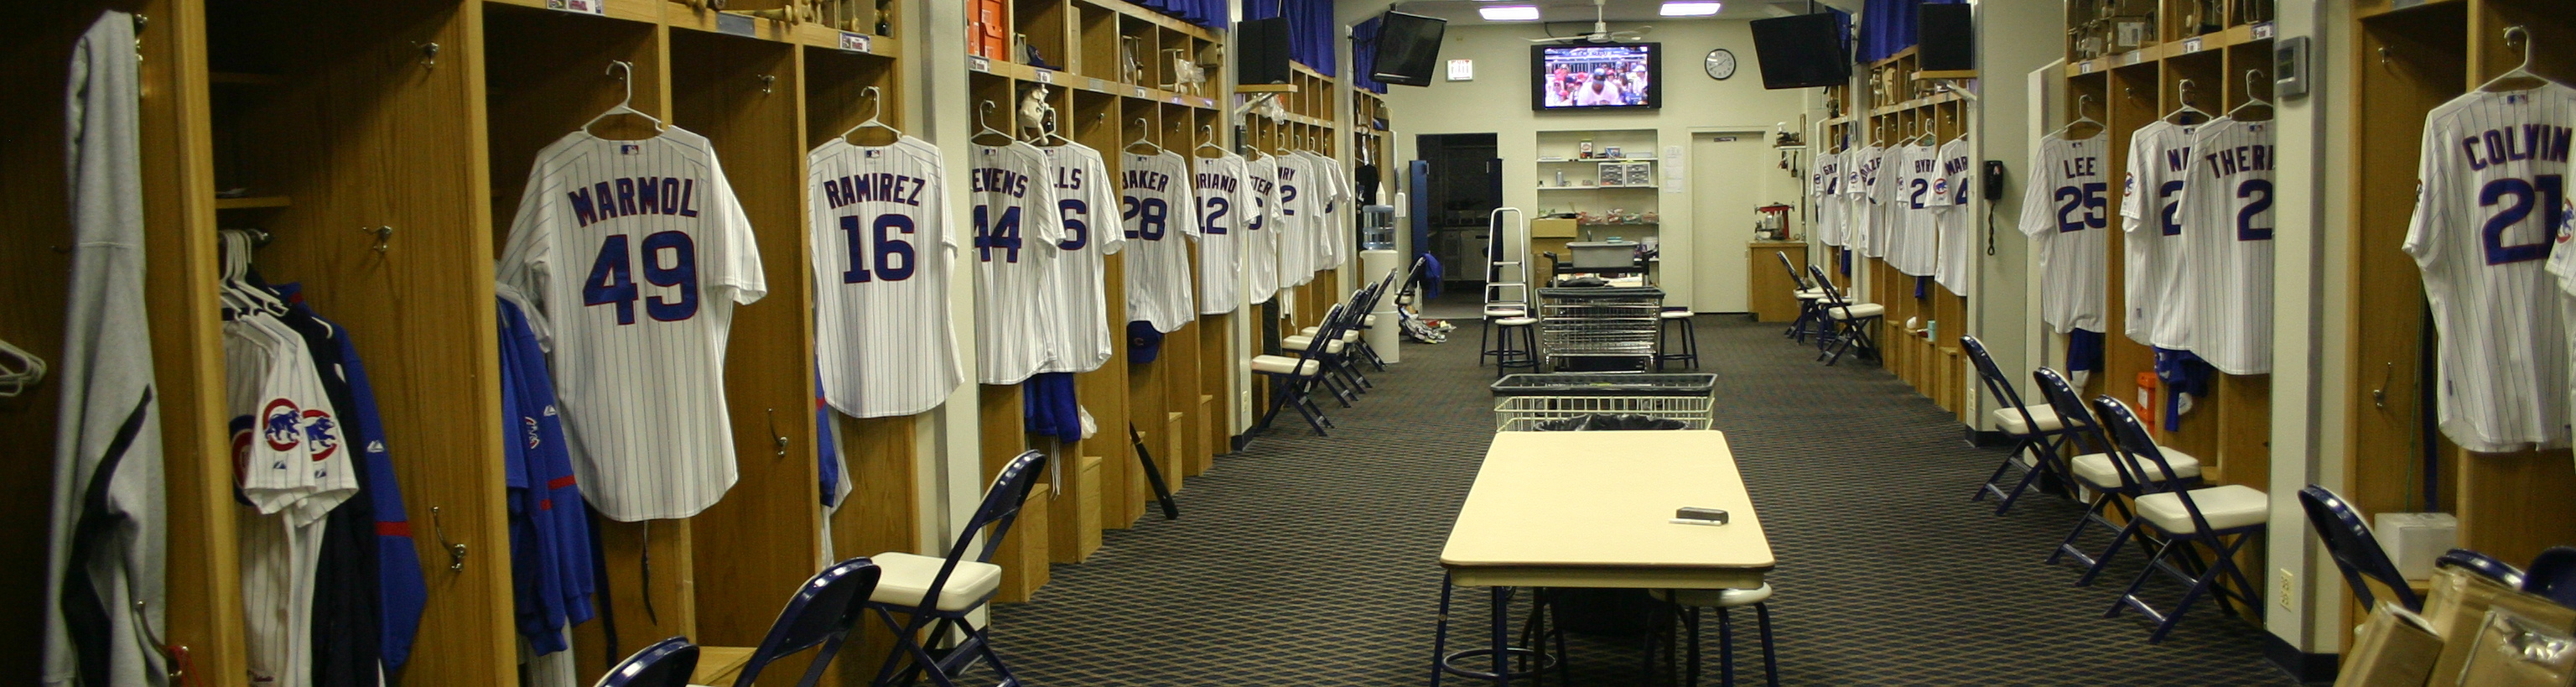 Chicago, Cubs, White Sox, 2013 Baseball Tours